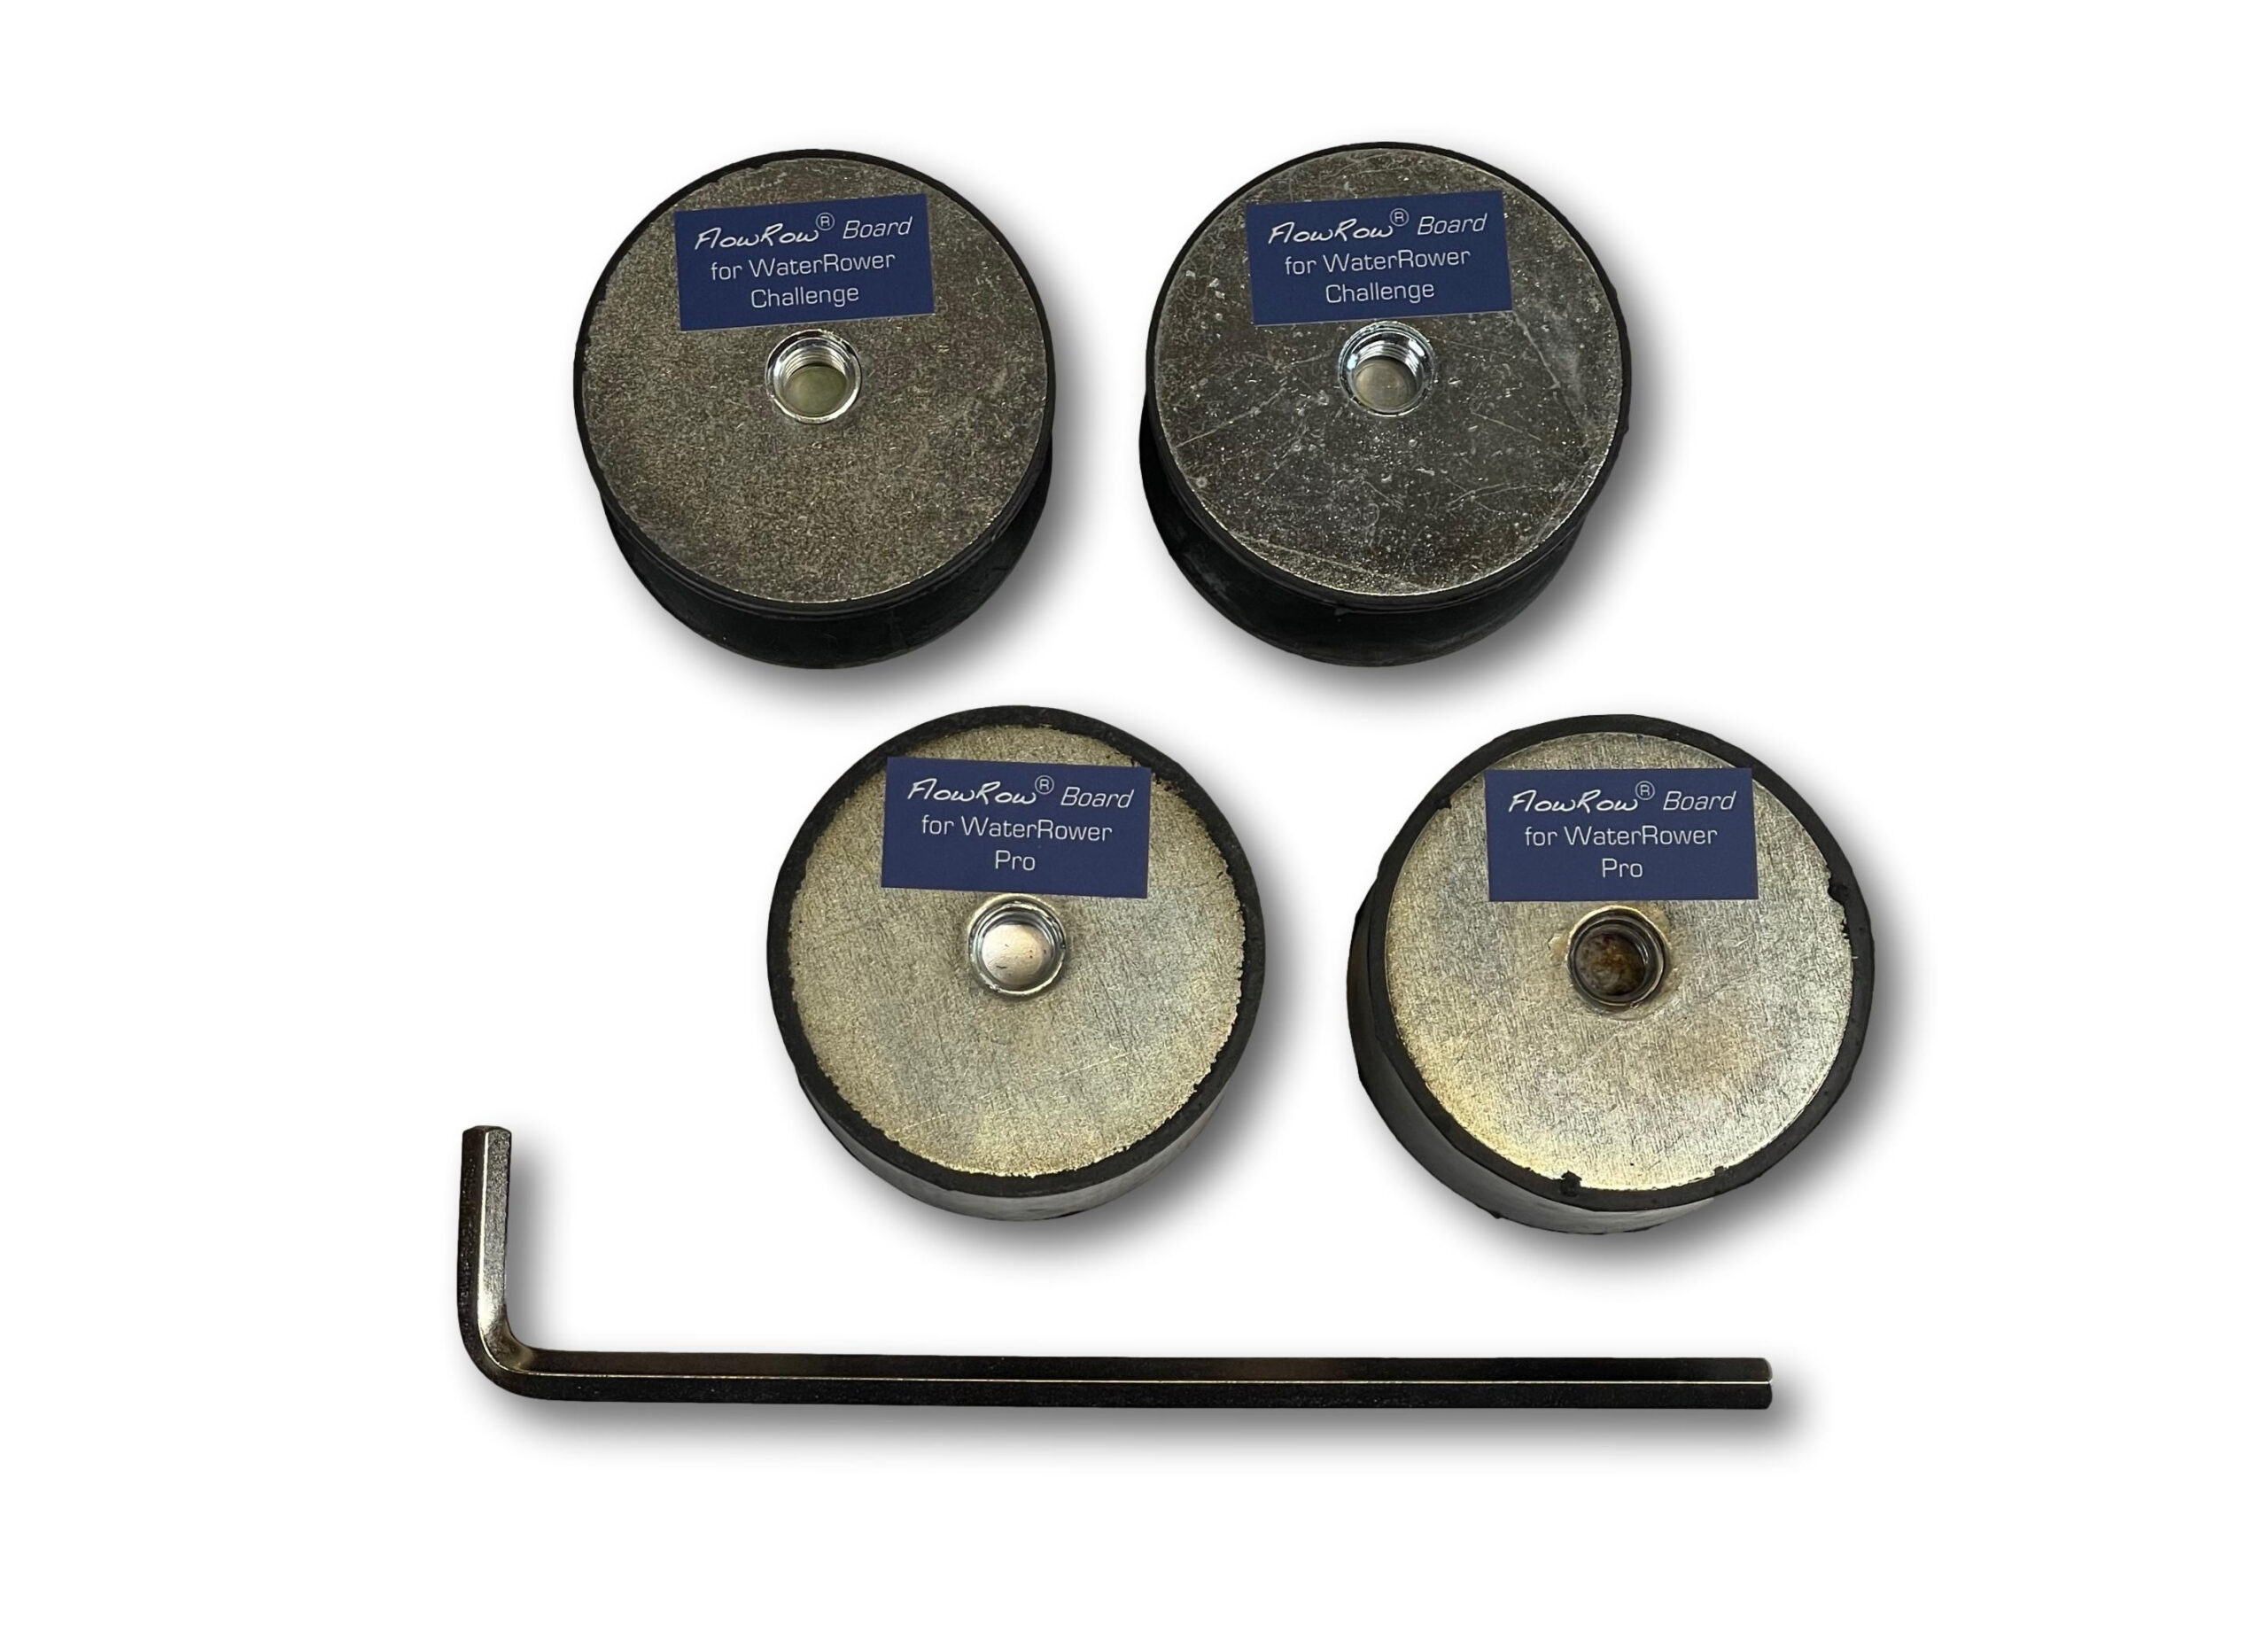 Double Replacement Kit for FlowRow Board